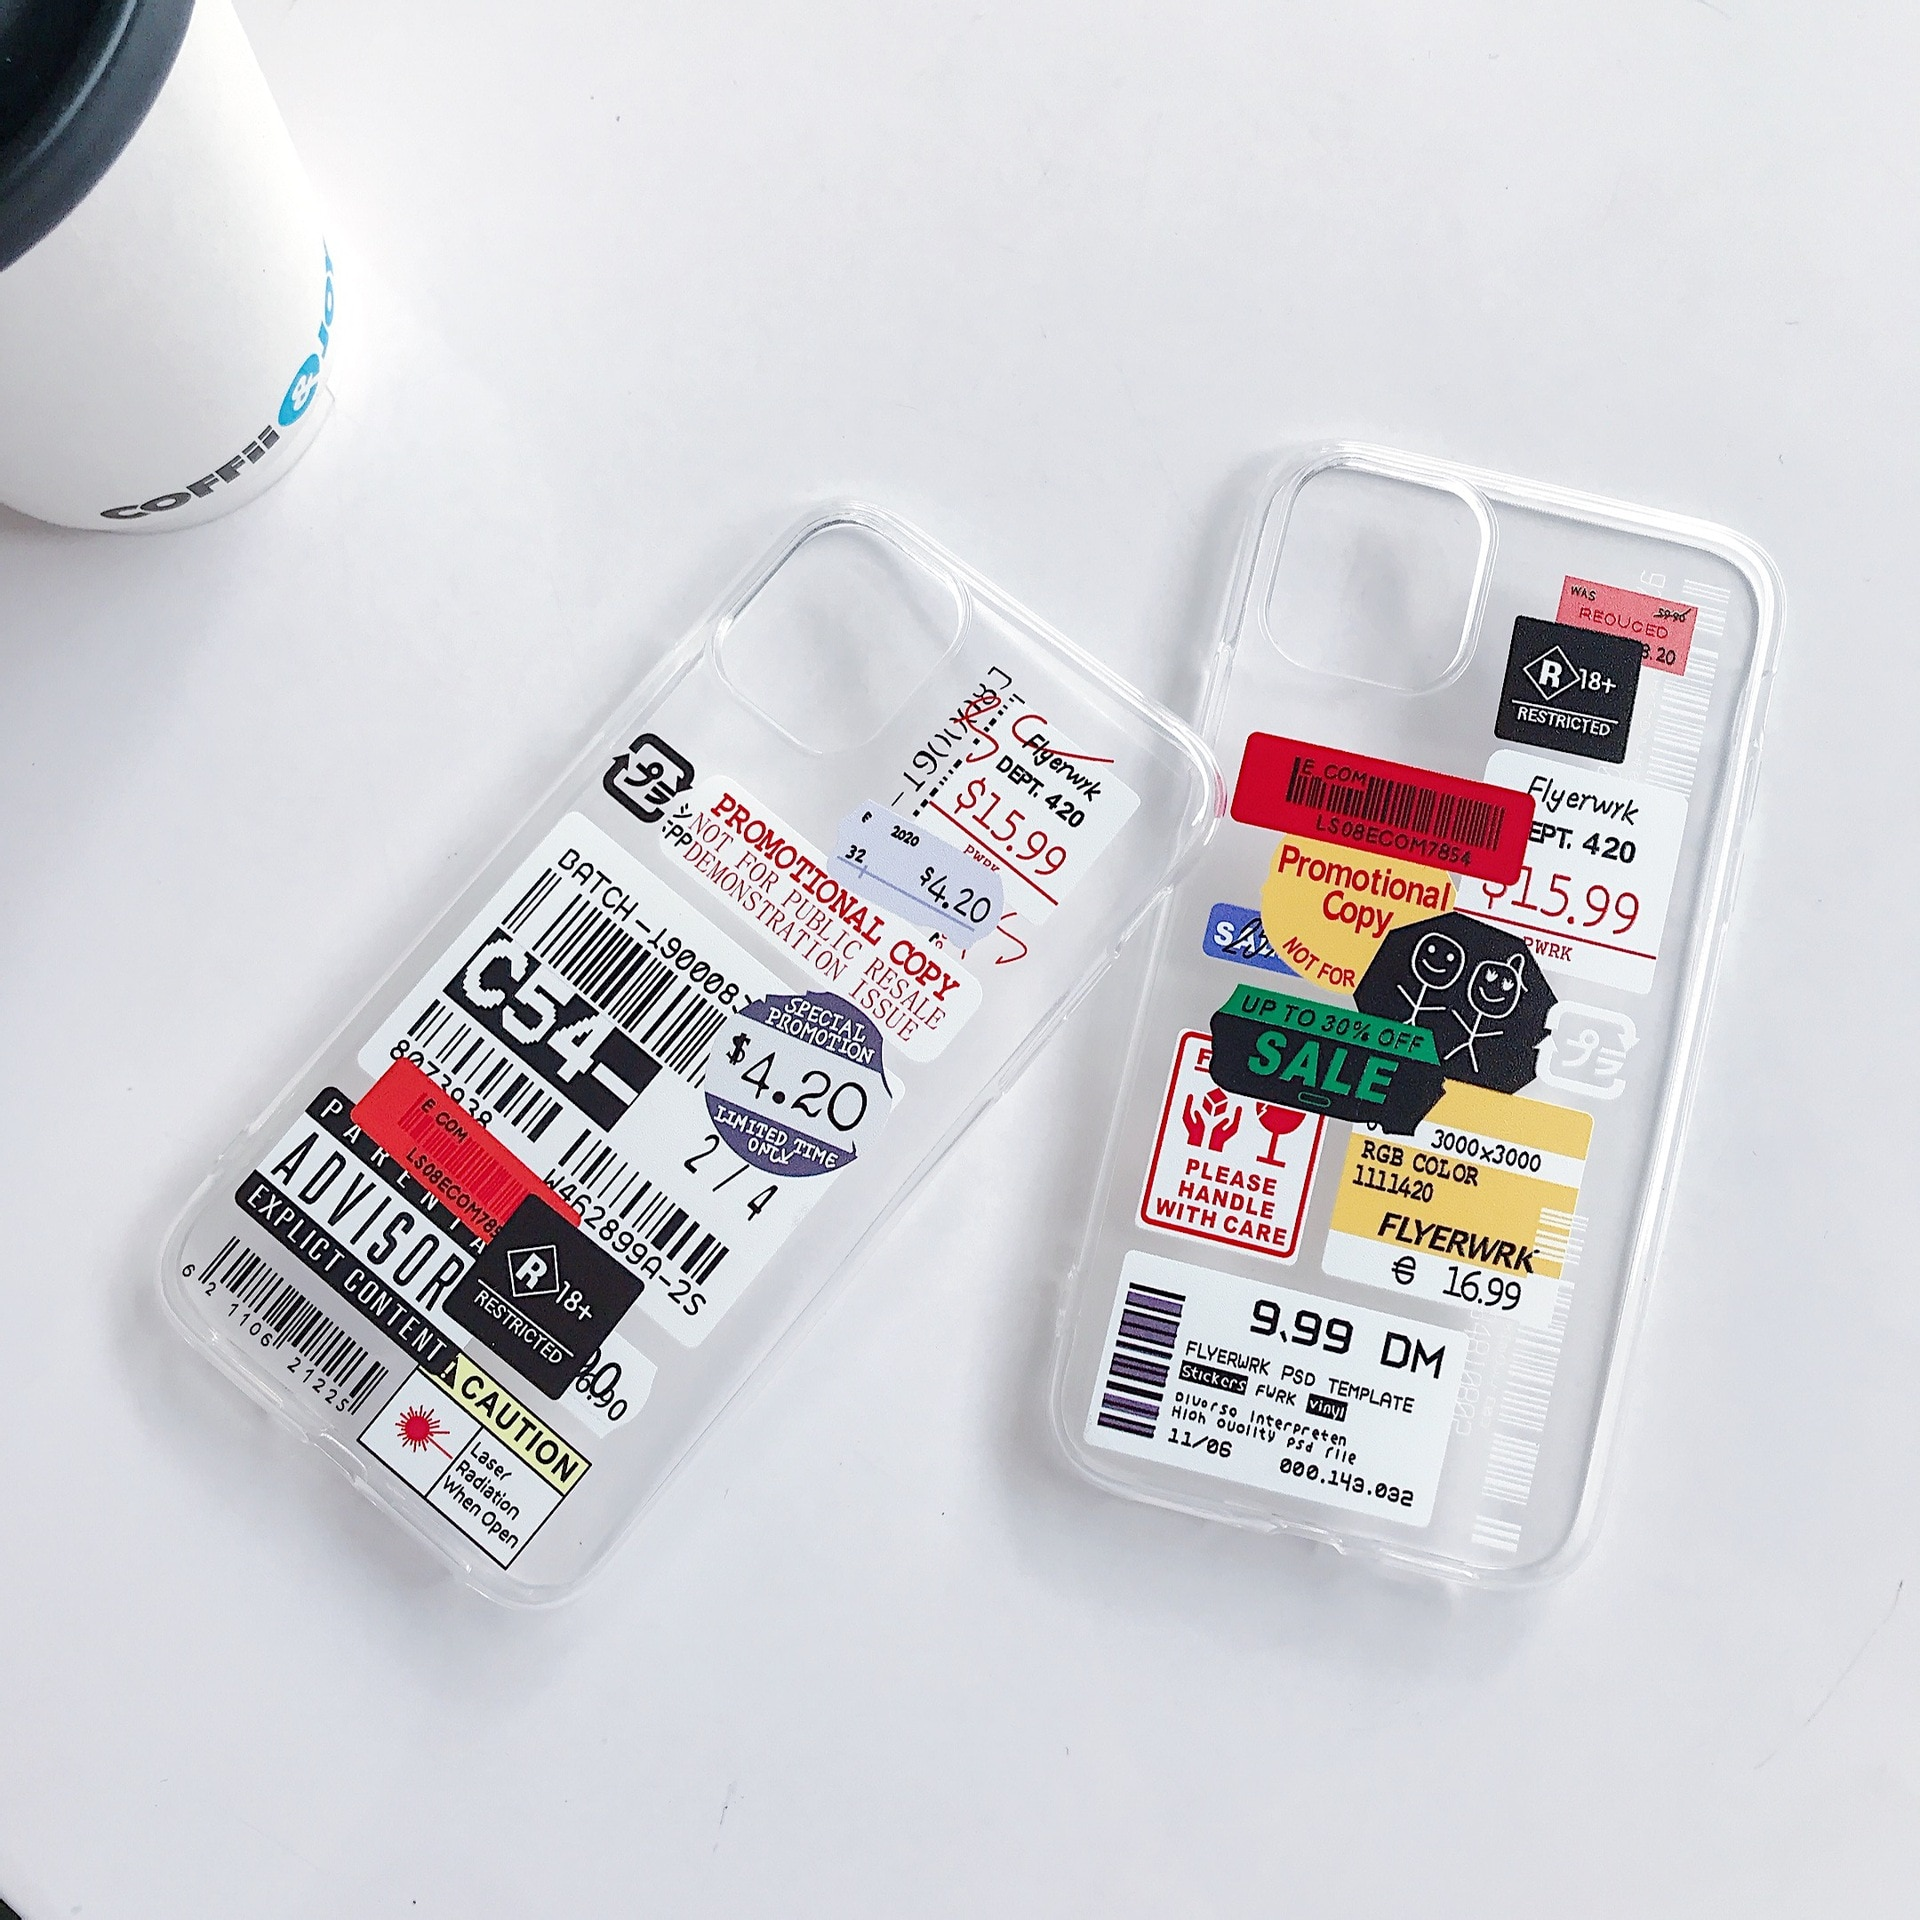 TPU transparent phone case Fro iPhone 12 11 Pro Max X XS XR 6 6S 7 8 Plus XS Max iPhone 11 Pro Label